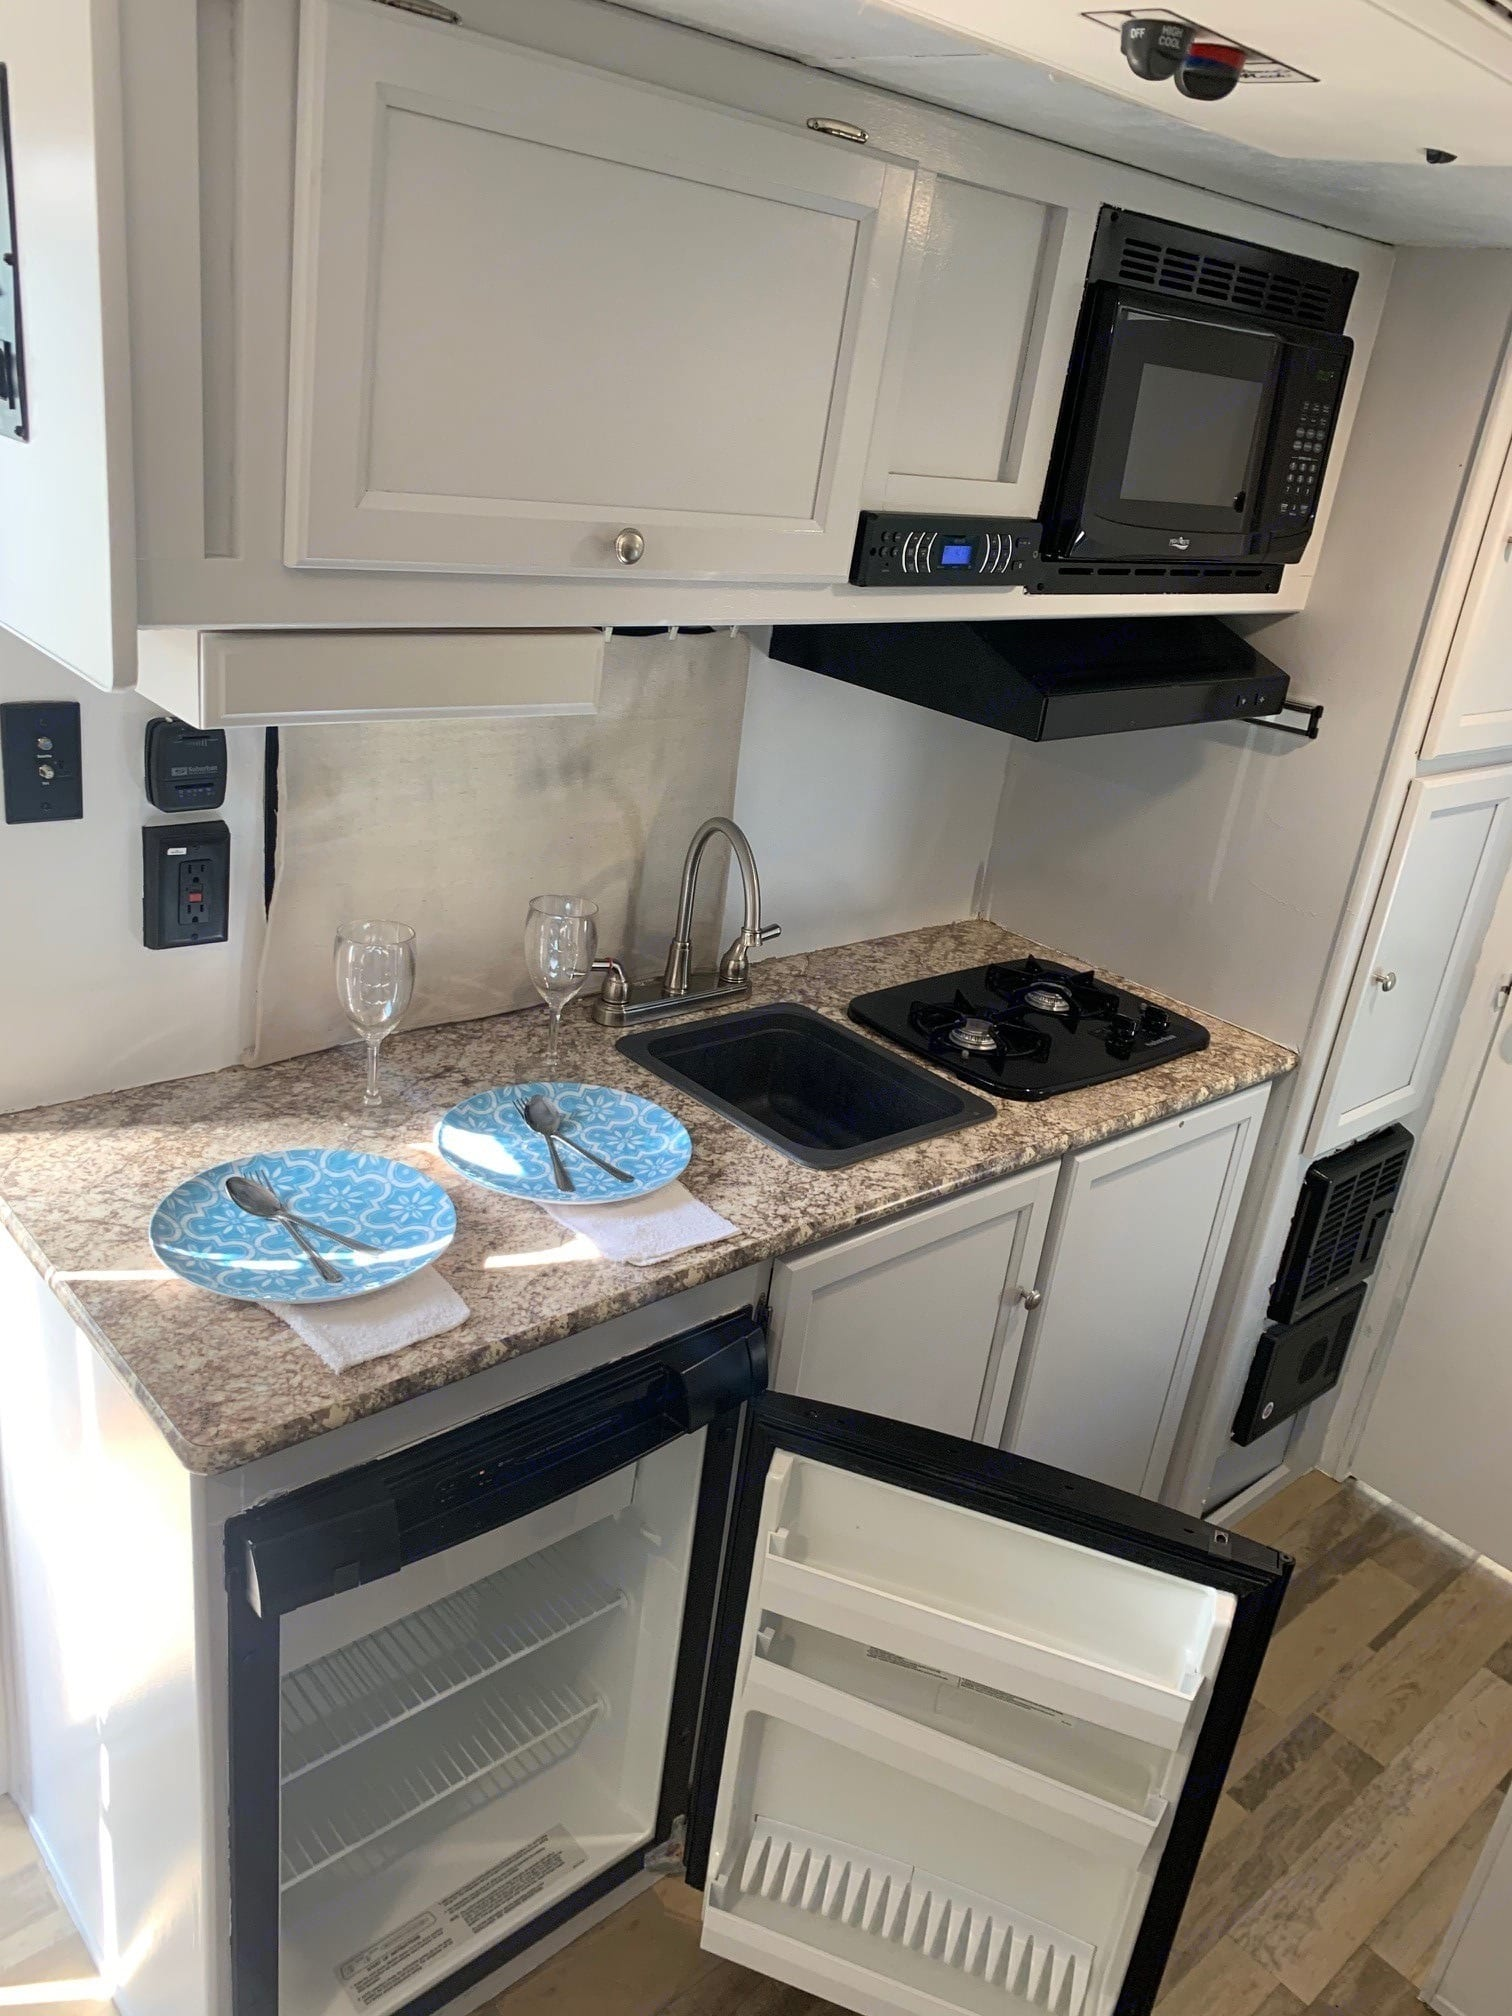 Apartment size refrigerator with freezer section. Coachmen Clipper 2018